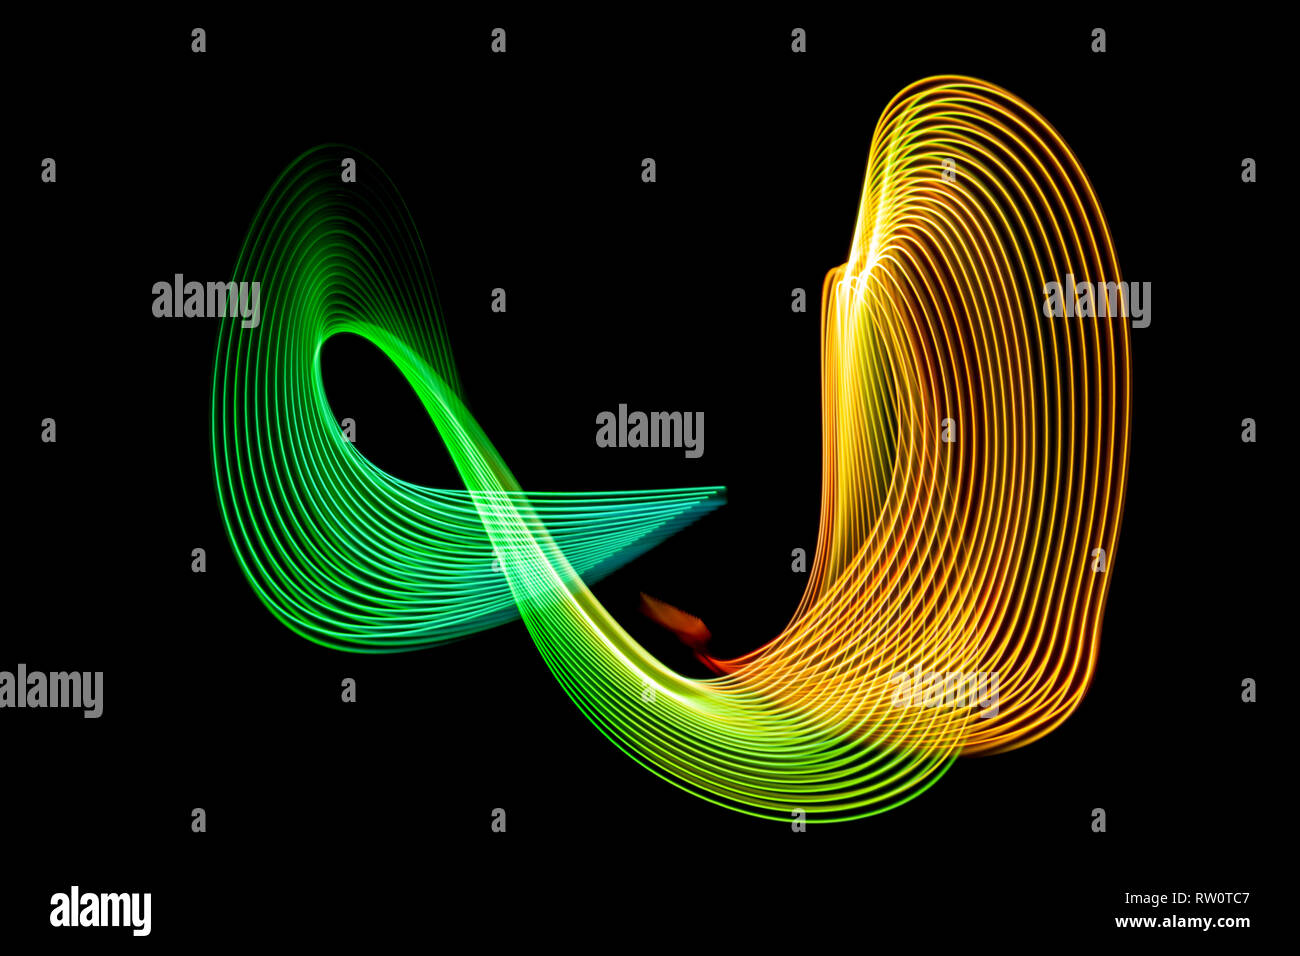 Colorful blue, yellow, green and orange neon spiral lines.Abstract background of blue neon glowing light shapes. Bright stripes for poster, website, - Stock Image